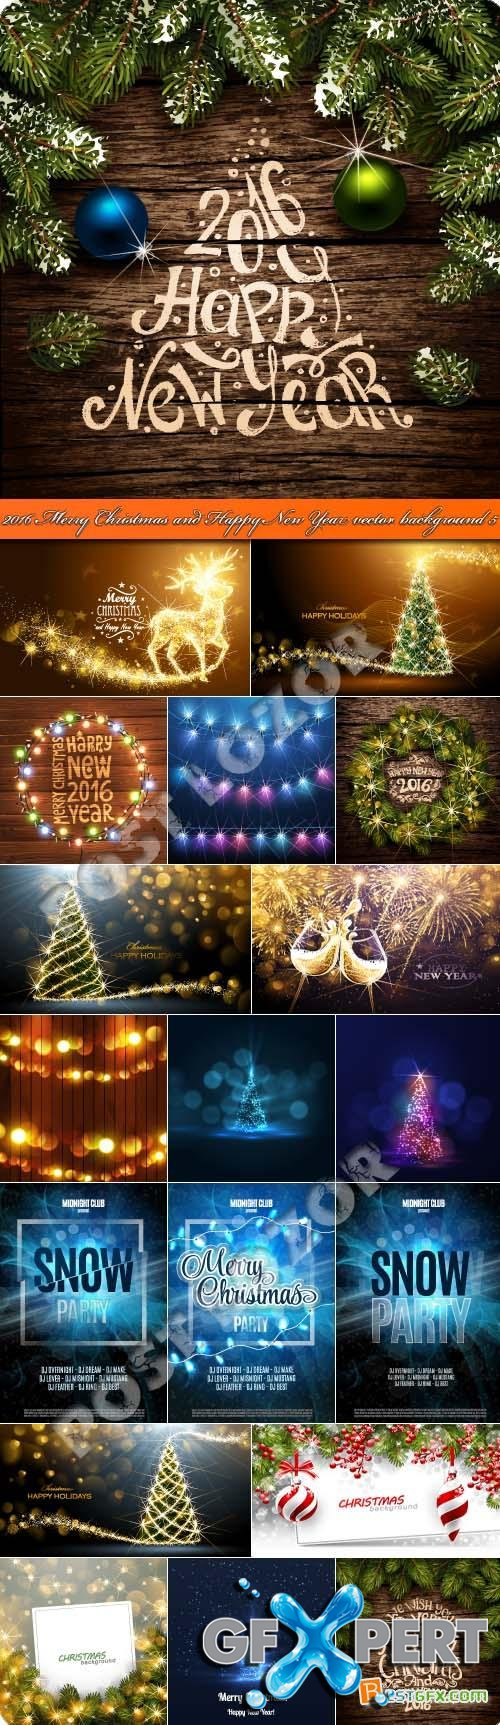 2016 Merry Christmas and Happy New Year vector background 5